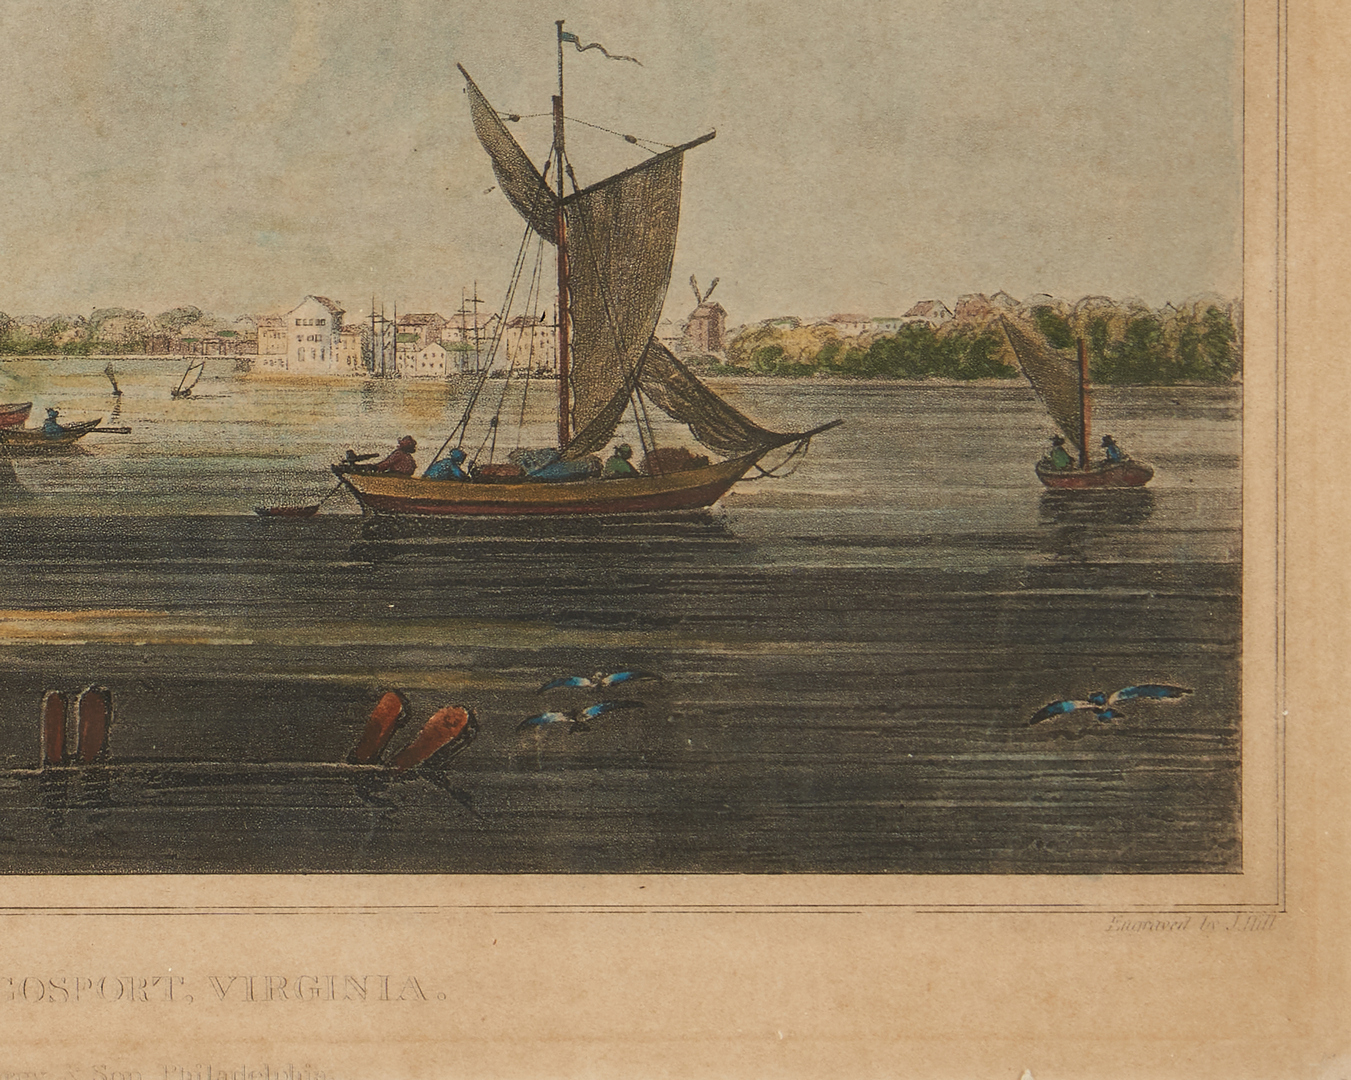 Lot 127: View of Norfolk from Cosport Virginia c. 1820